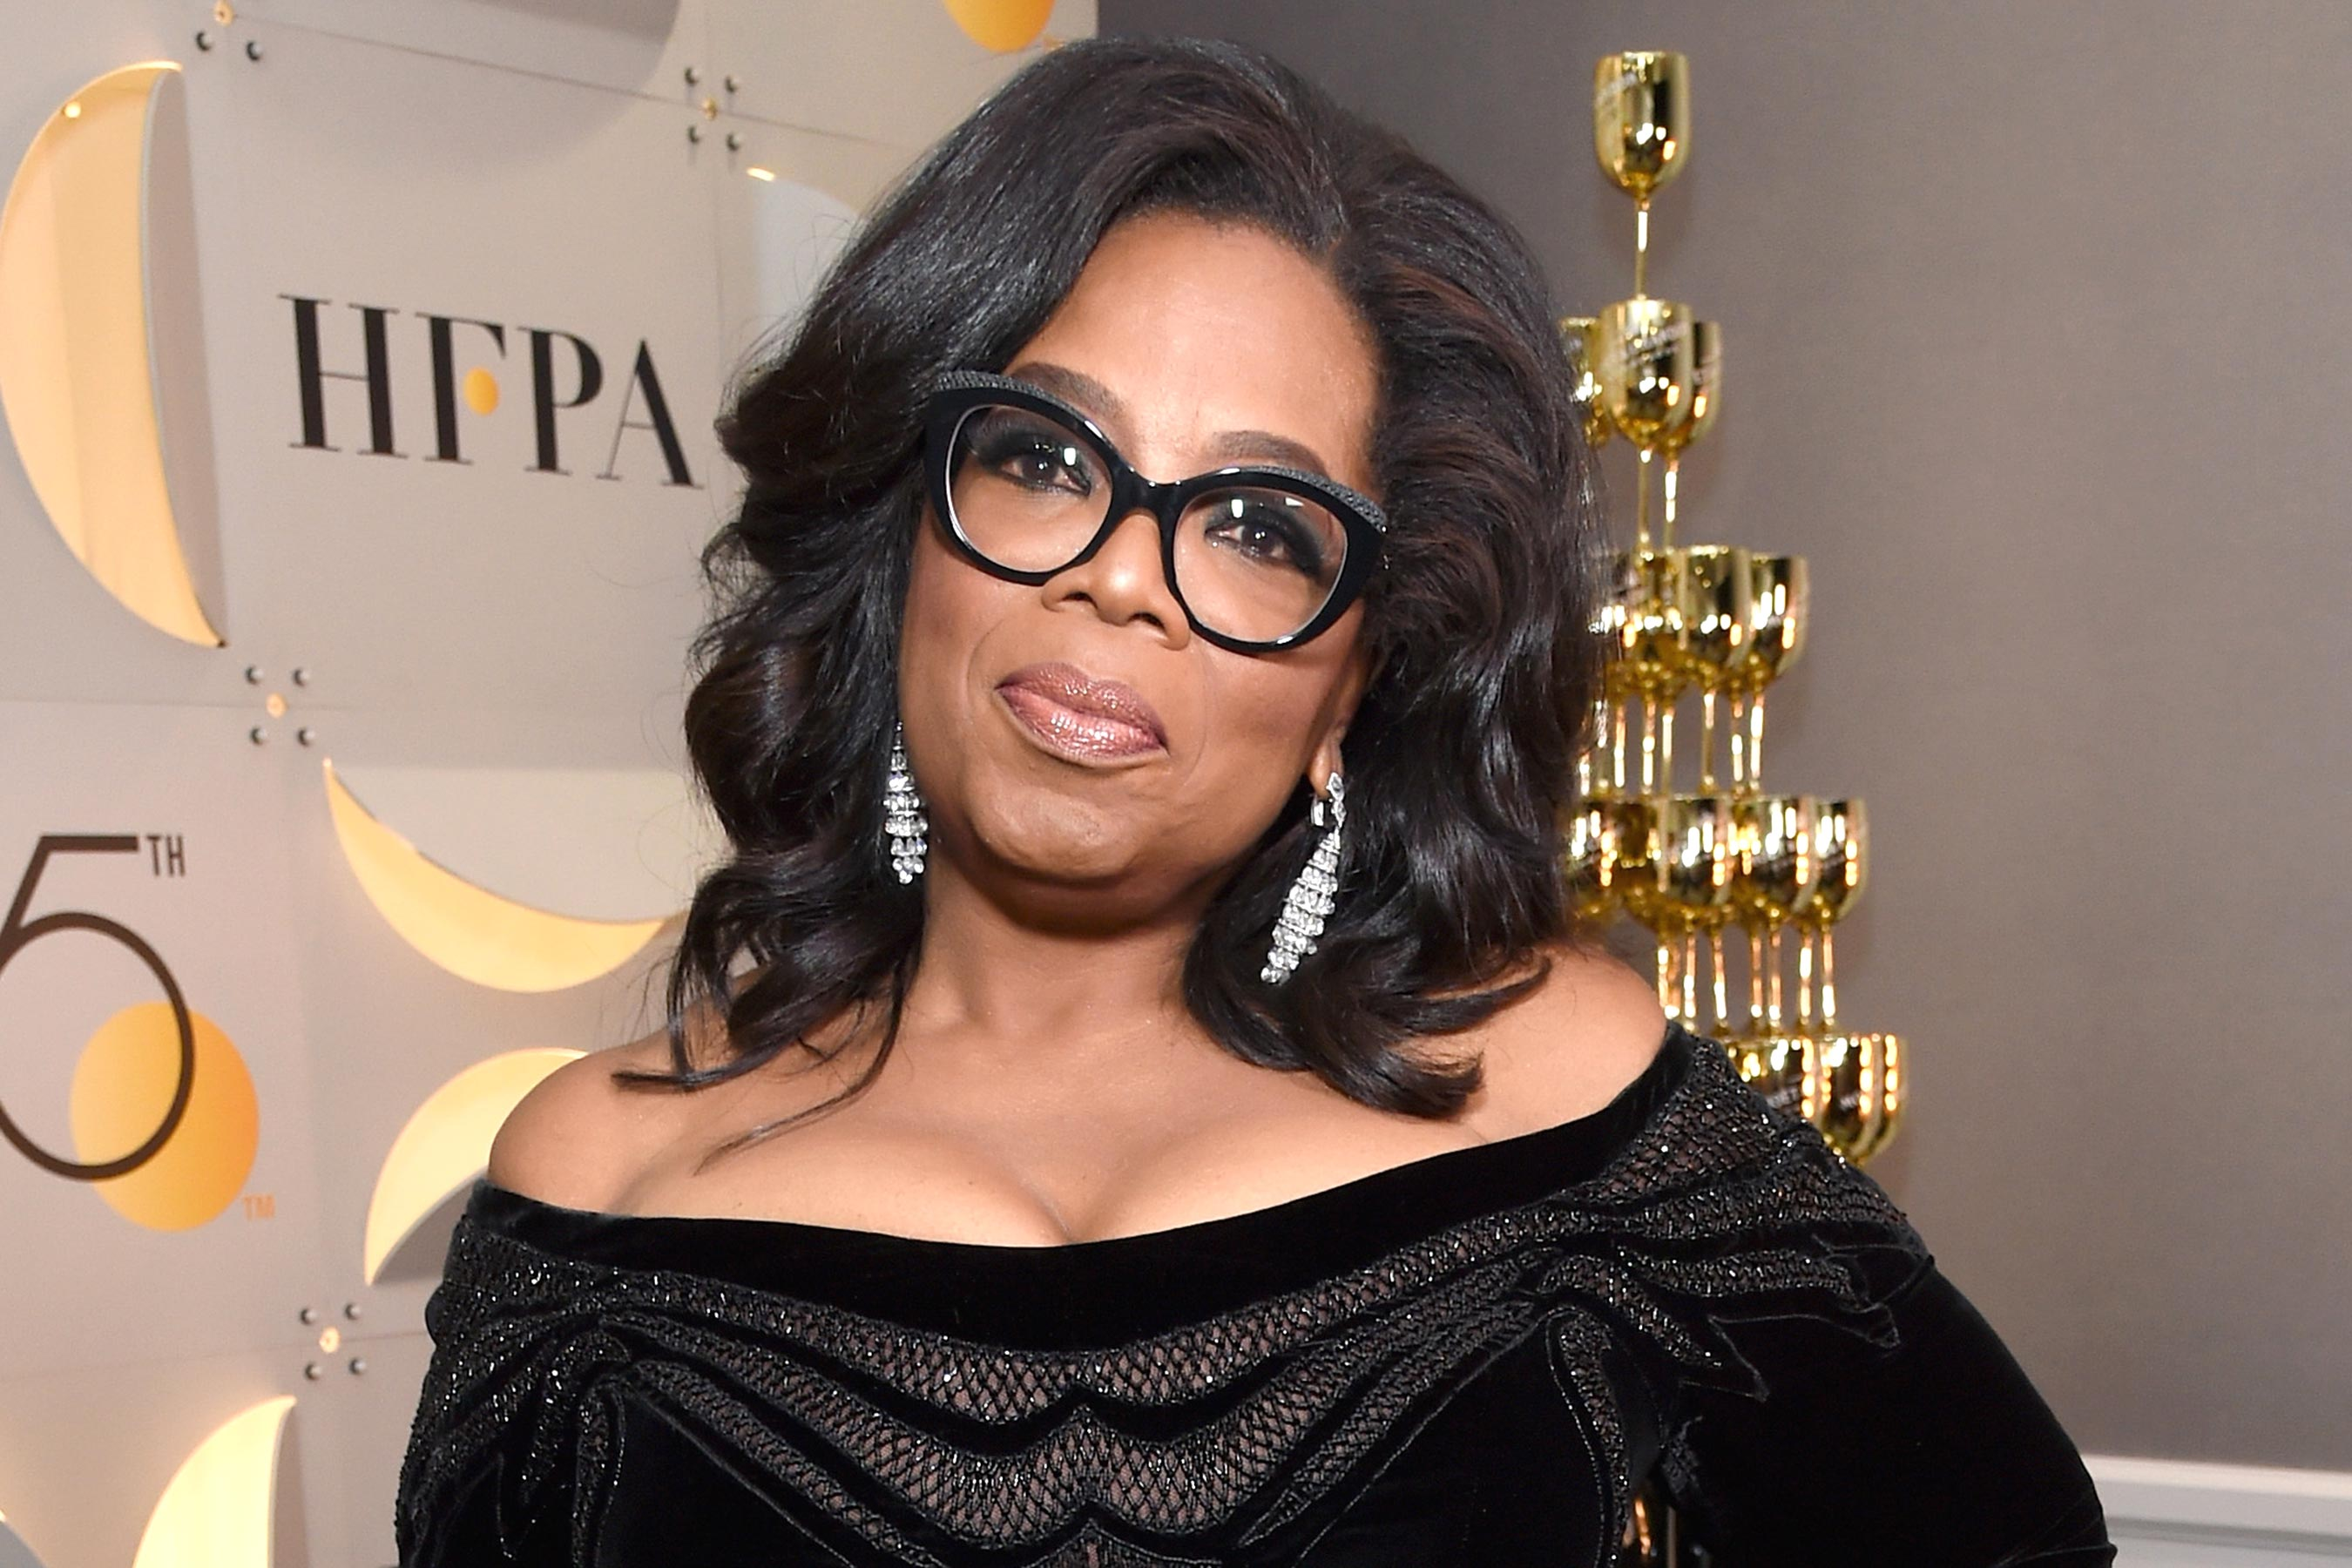 Oprah Winfrey officially shoots down presidential run in first post-Globes interview